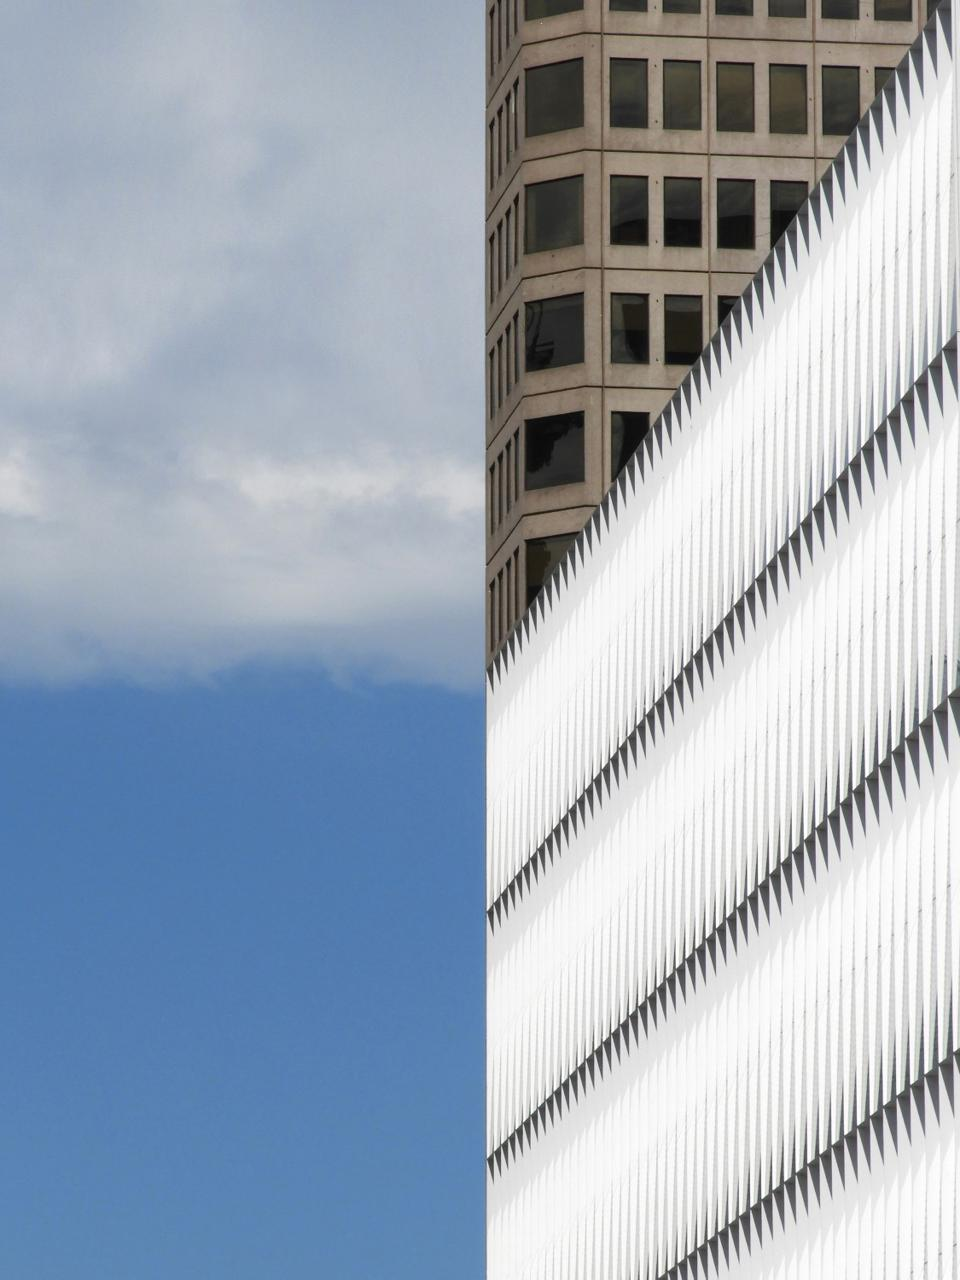 Architectural photography in Dallas by Nikola Olic